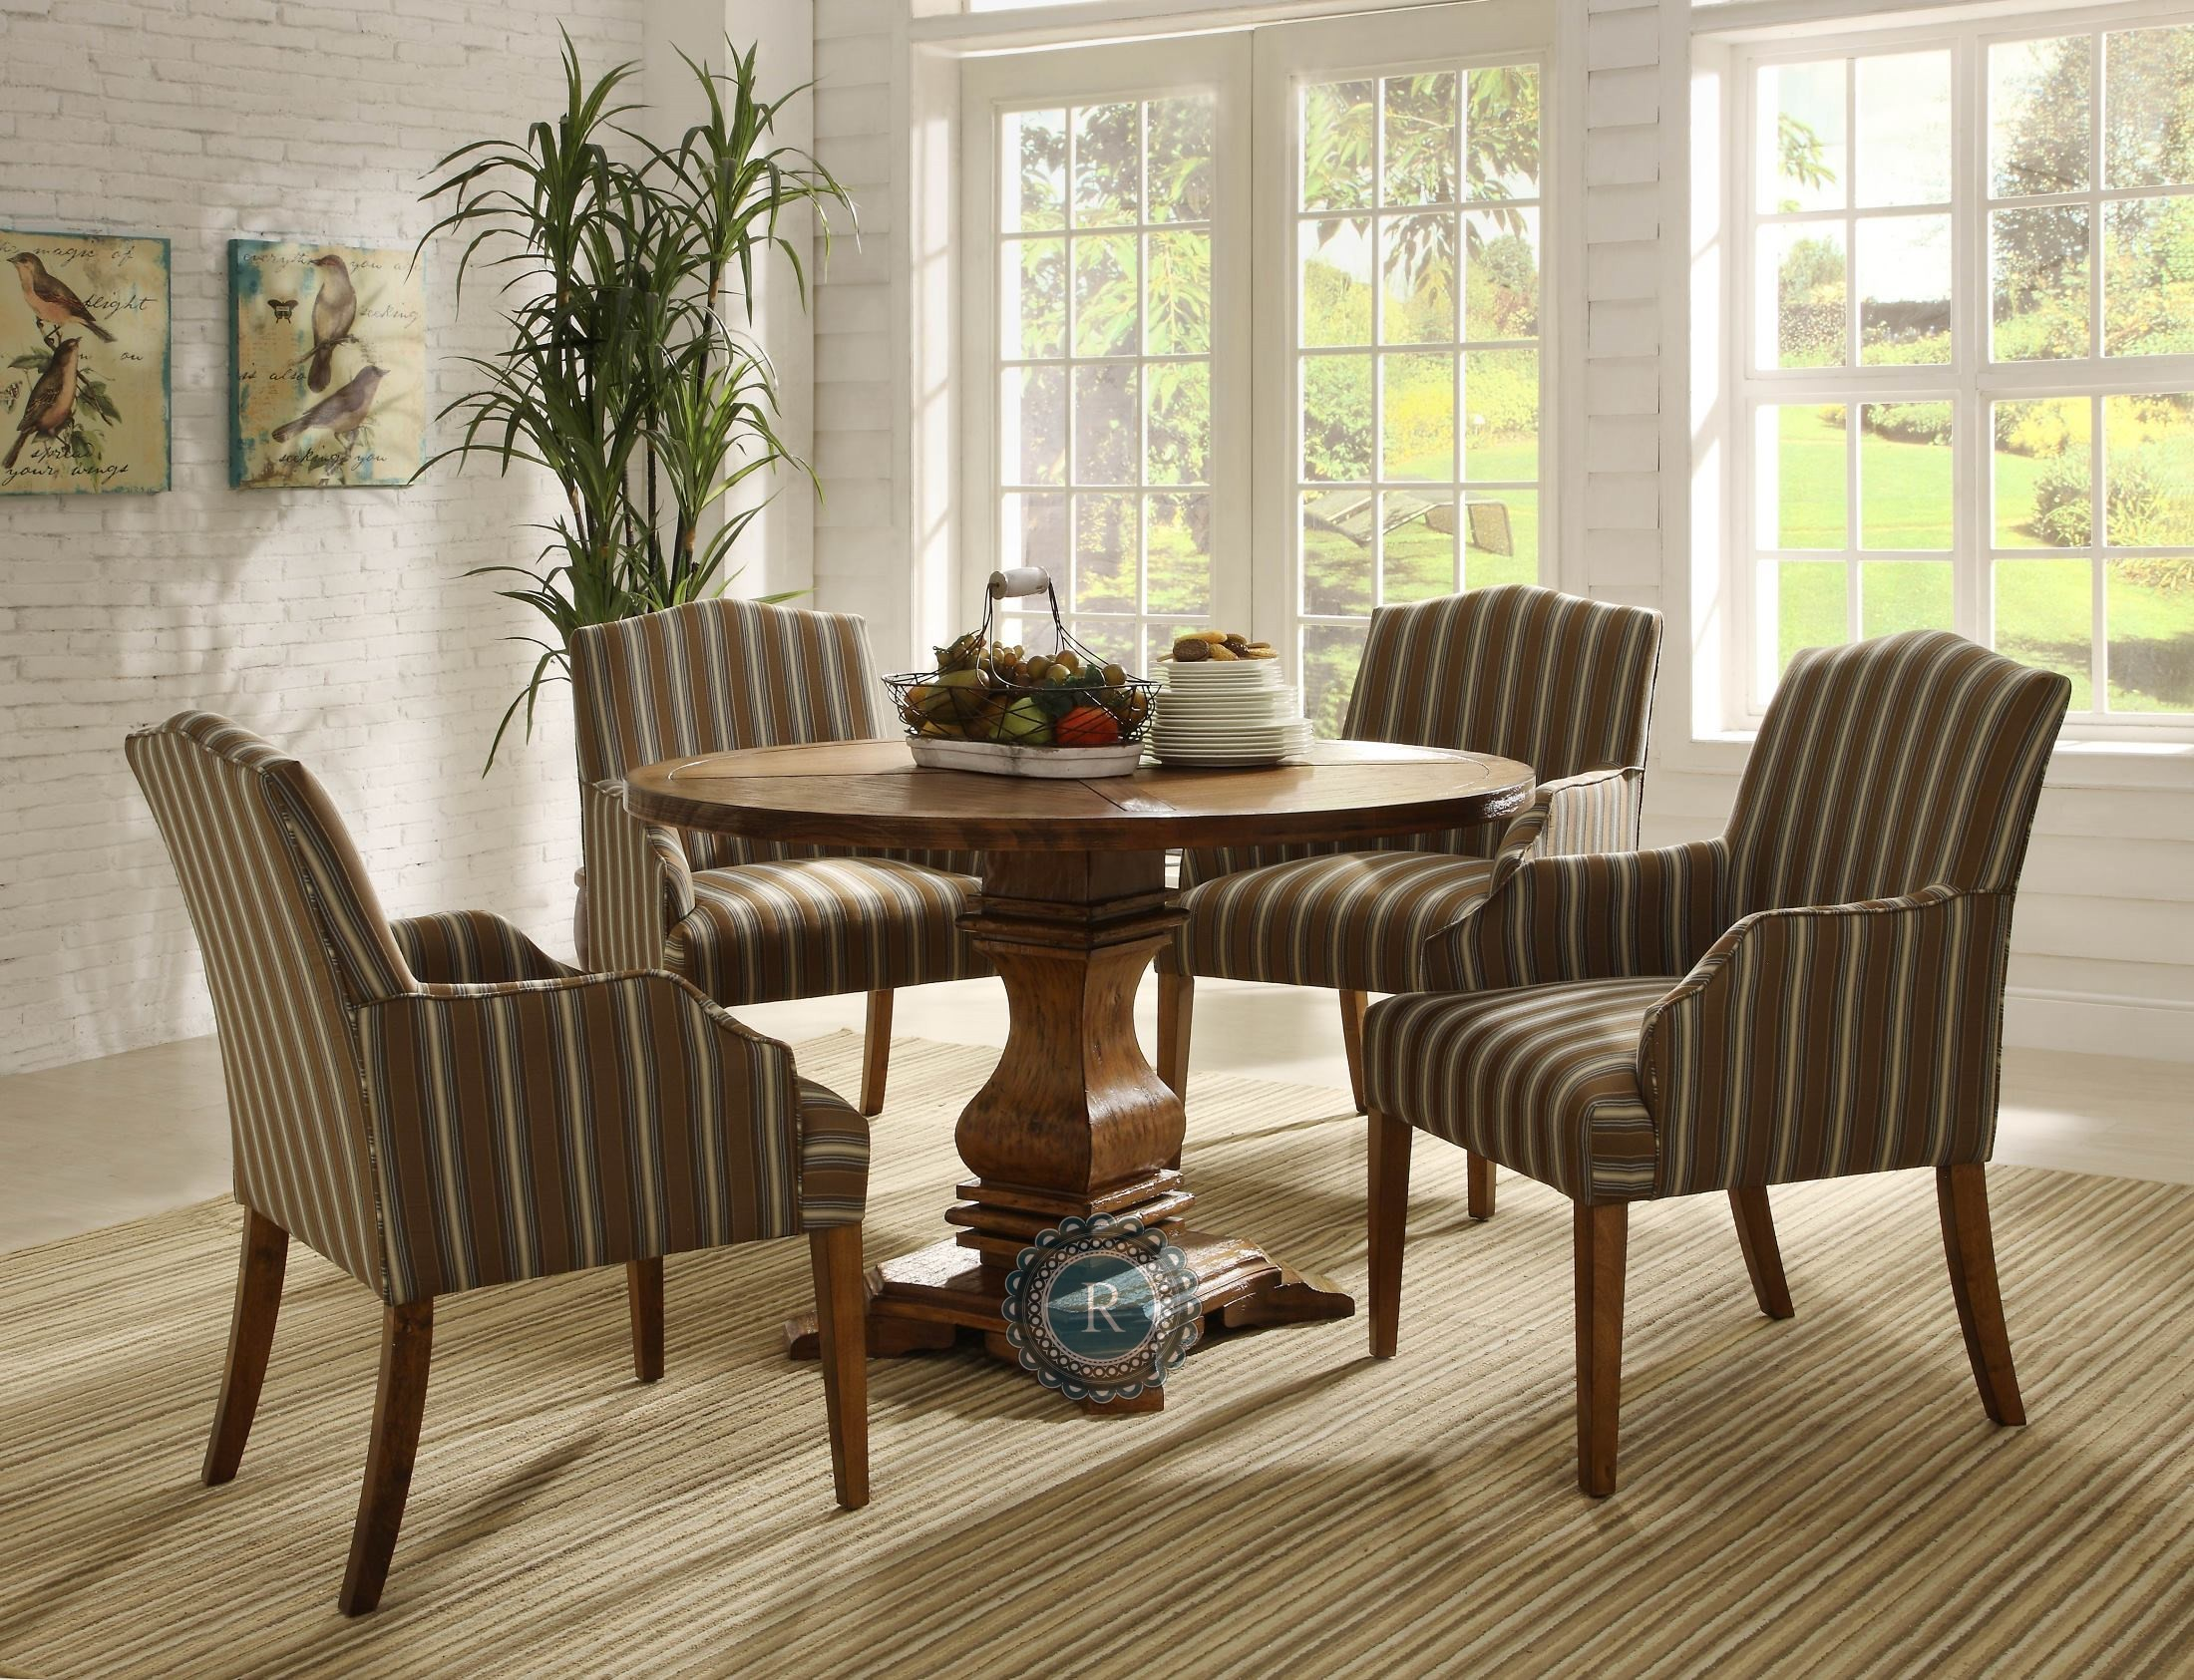 Trade Furniture Company  Light and Dark Wood Furniture UK